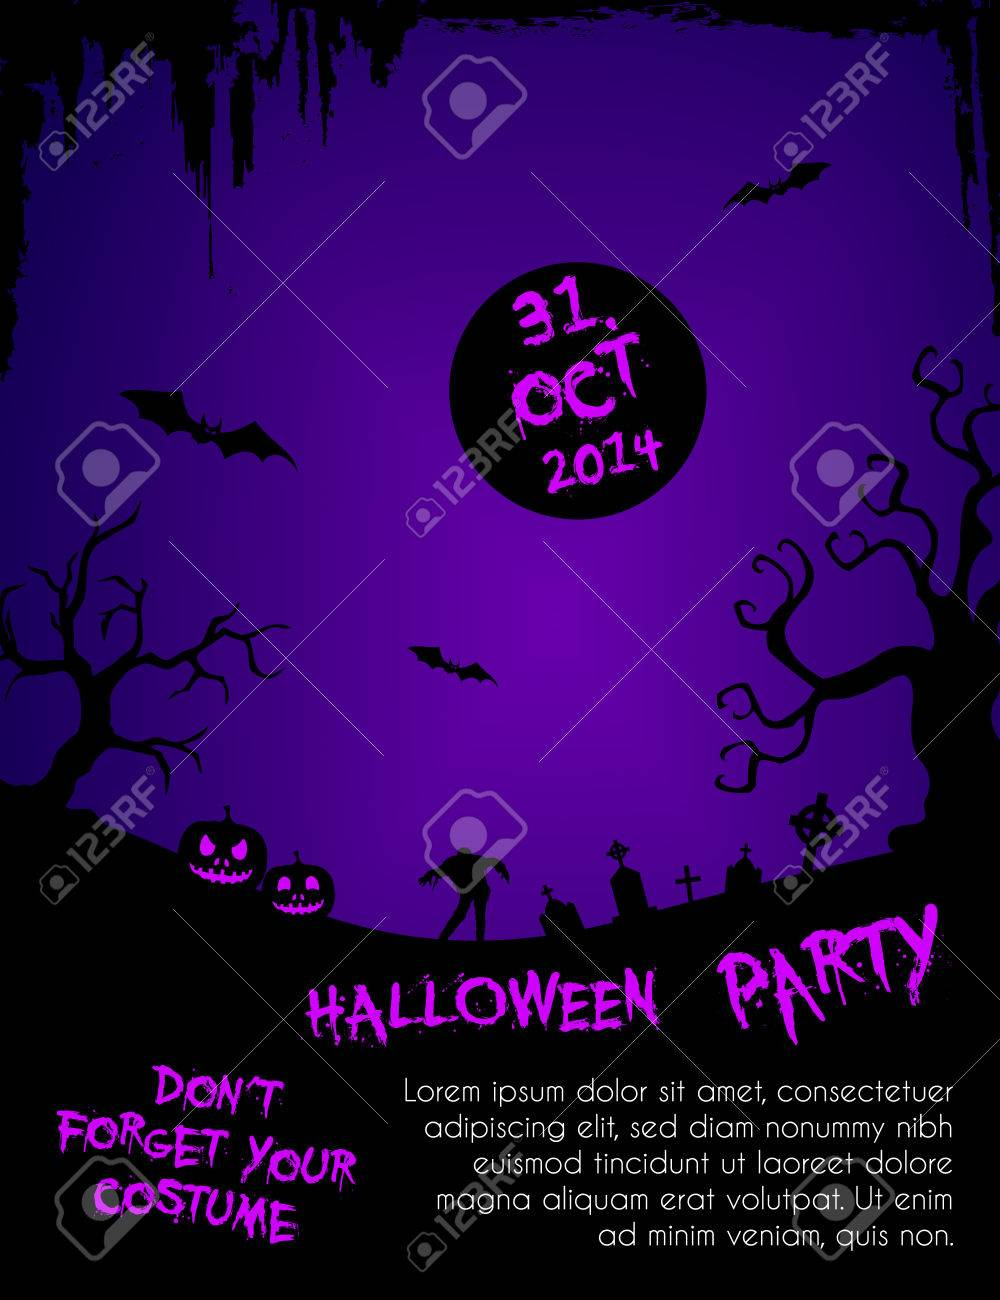 halloween party flyer template purple and black royalty free